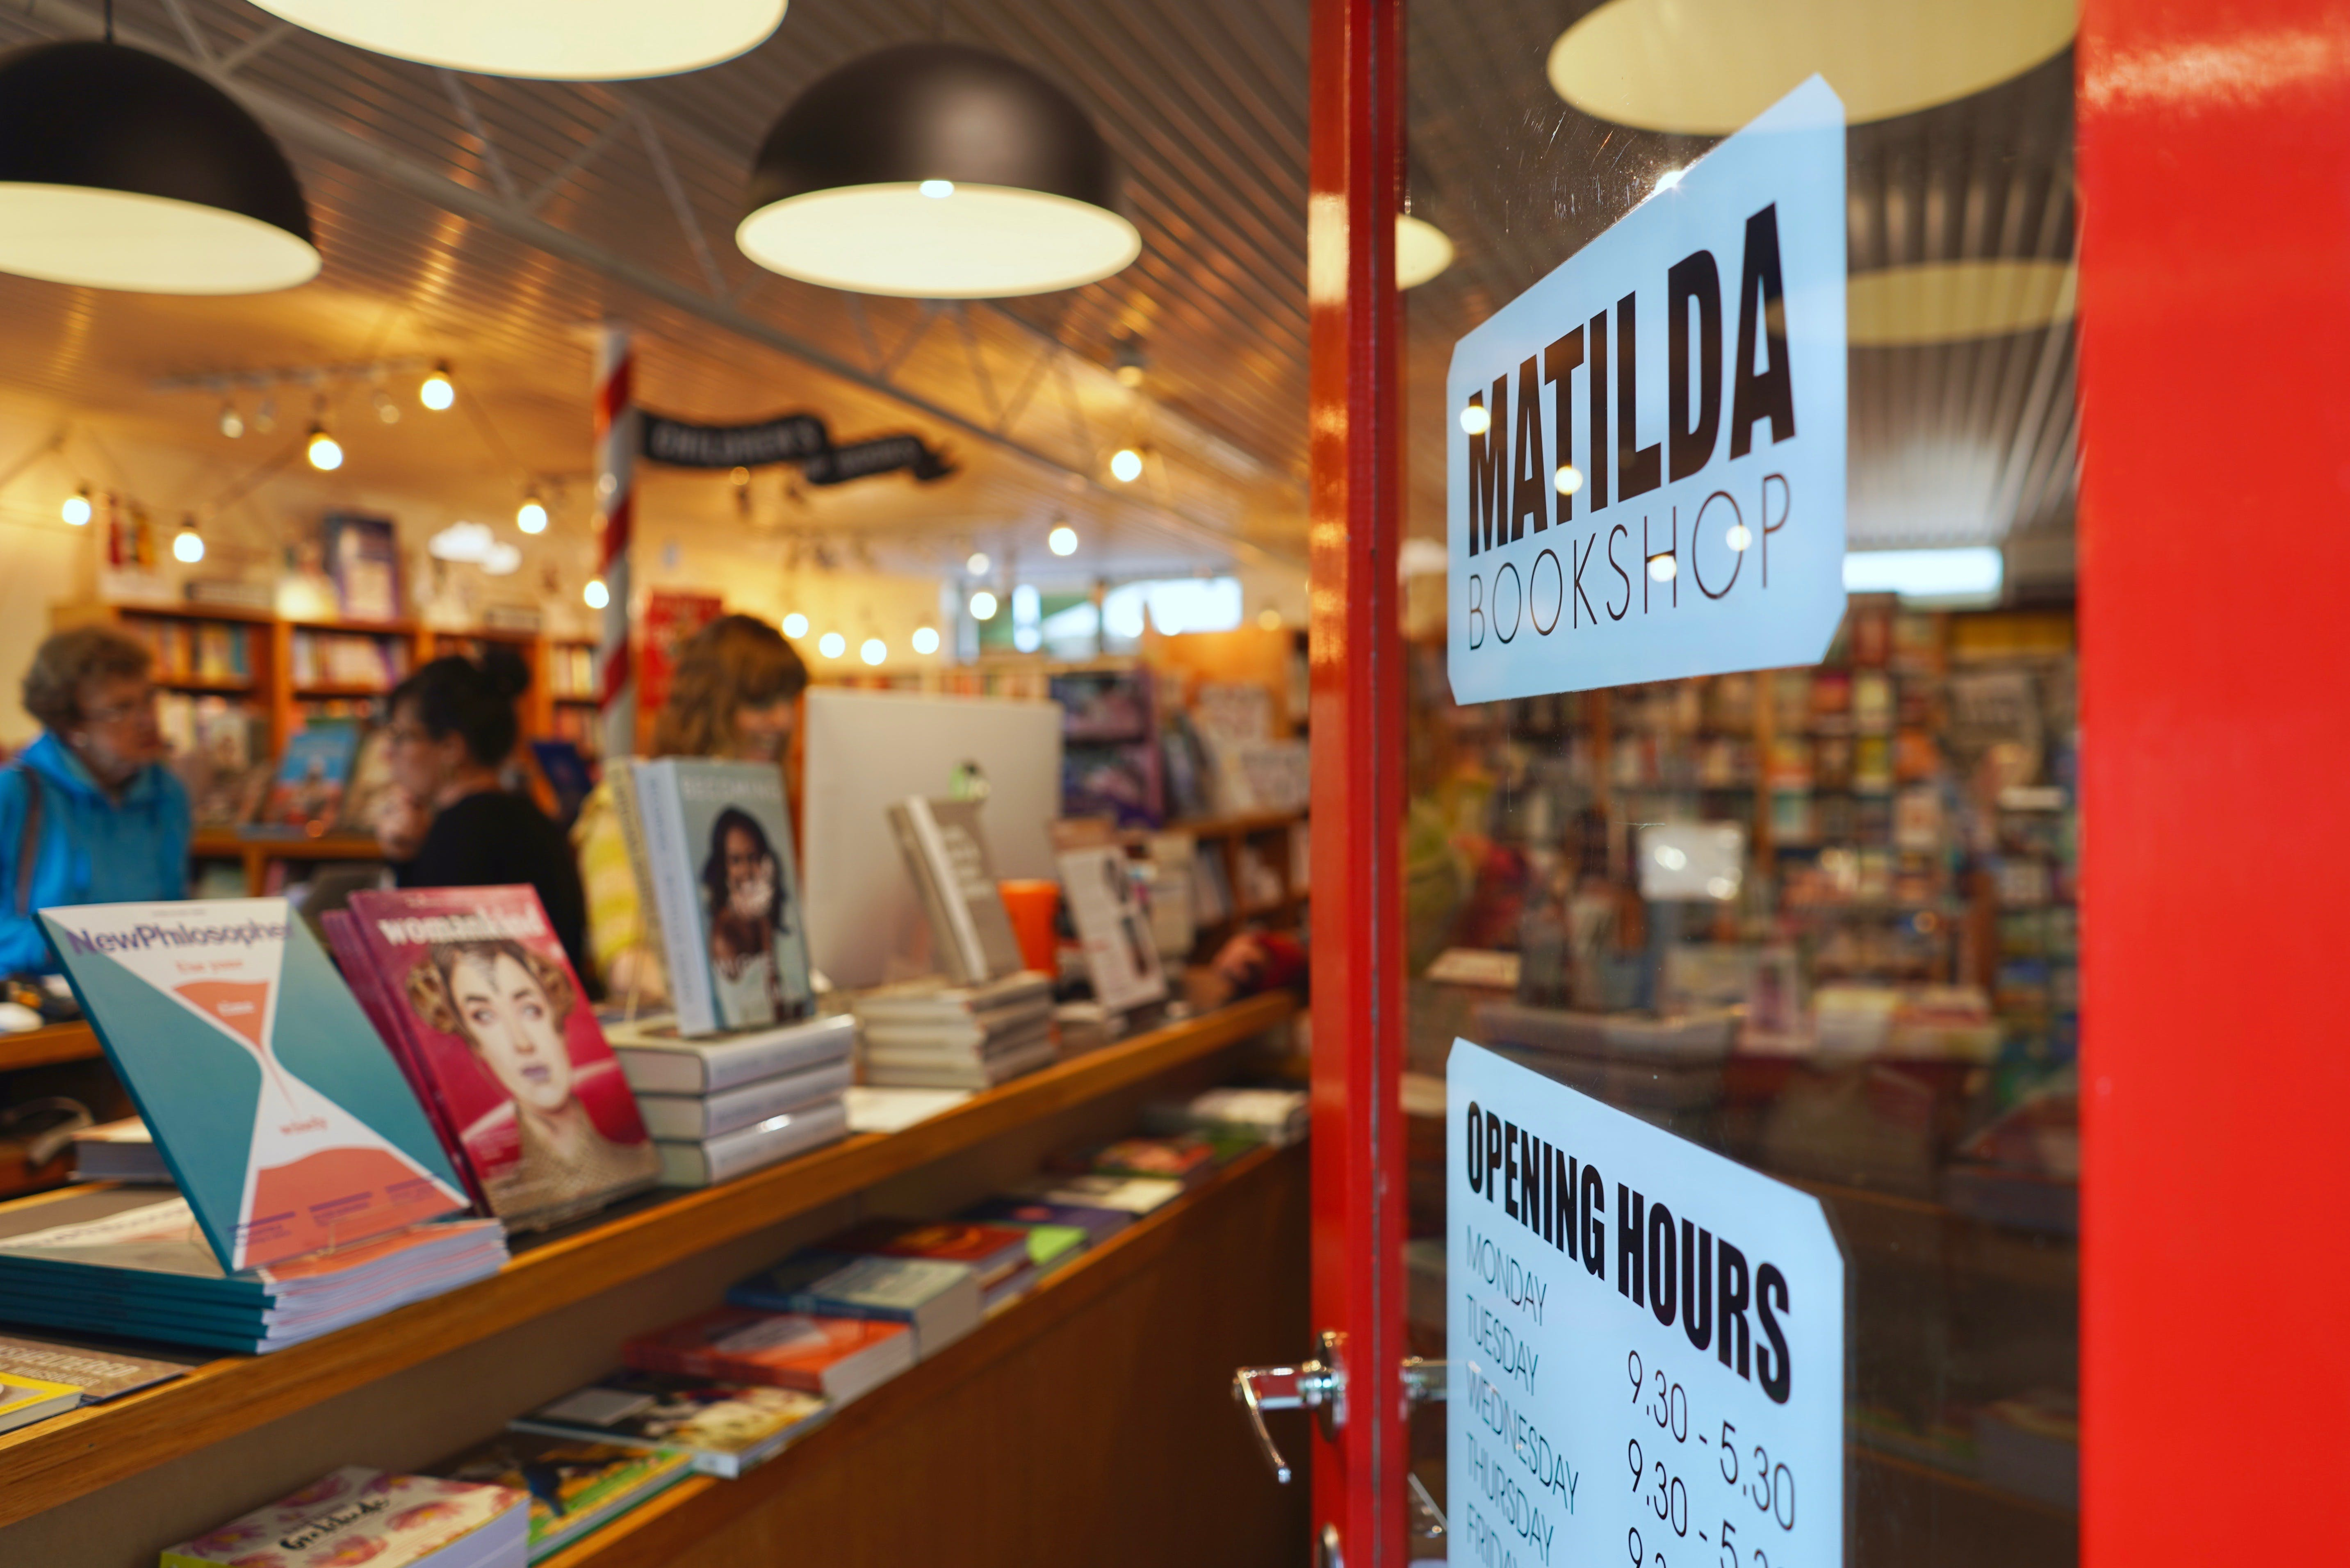 Matilda Bookshop - Accommodation Fremantle